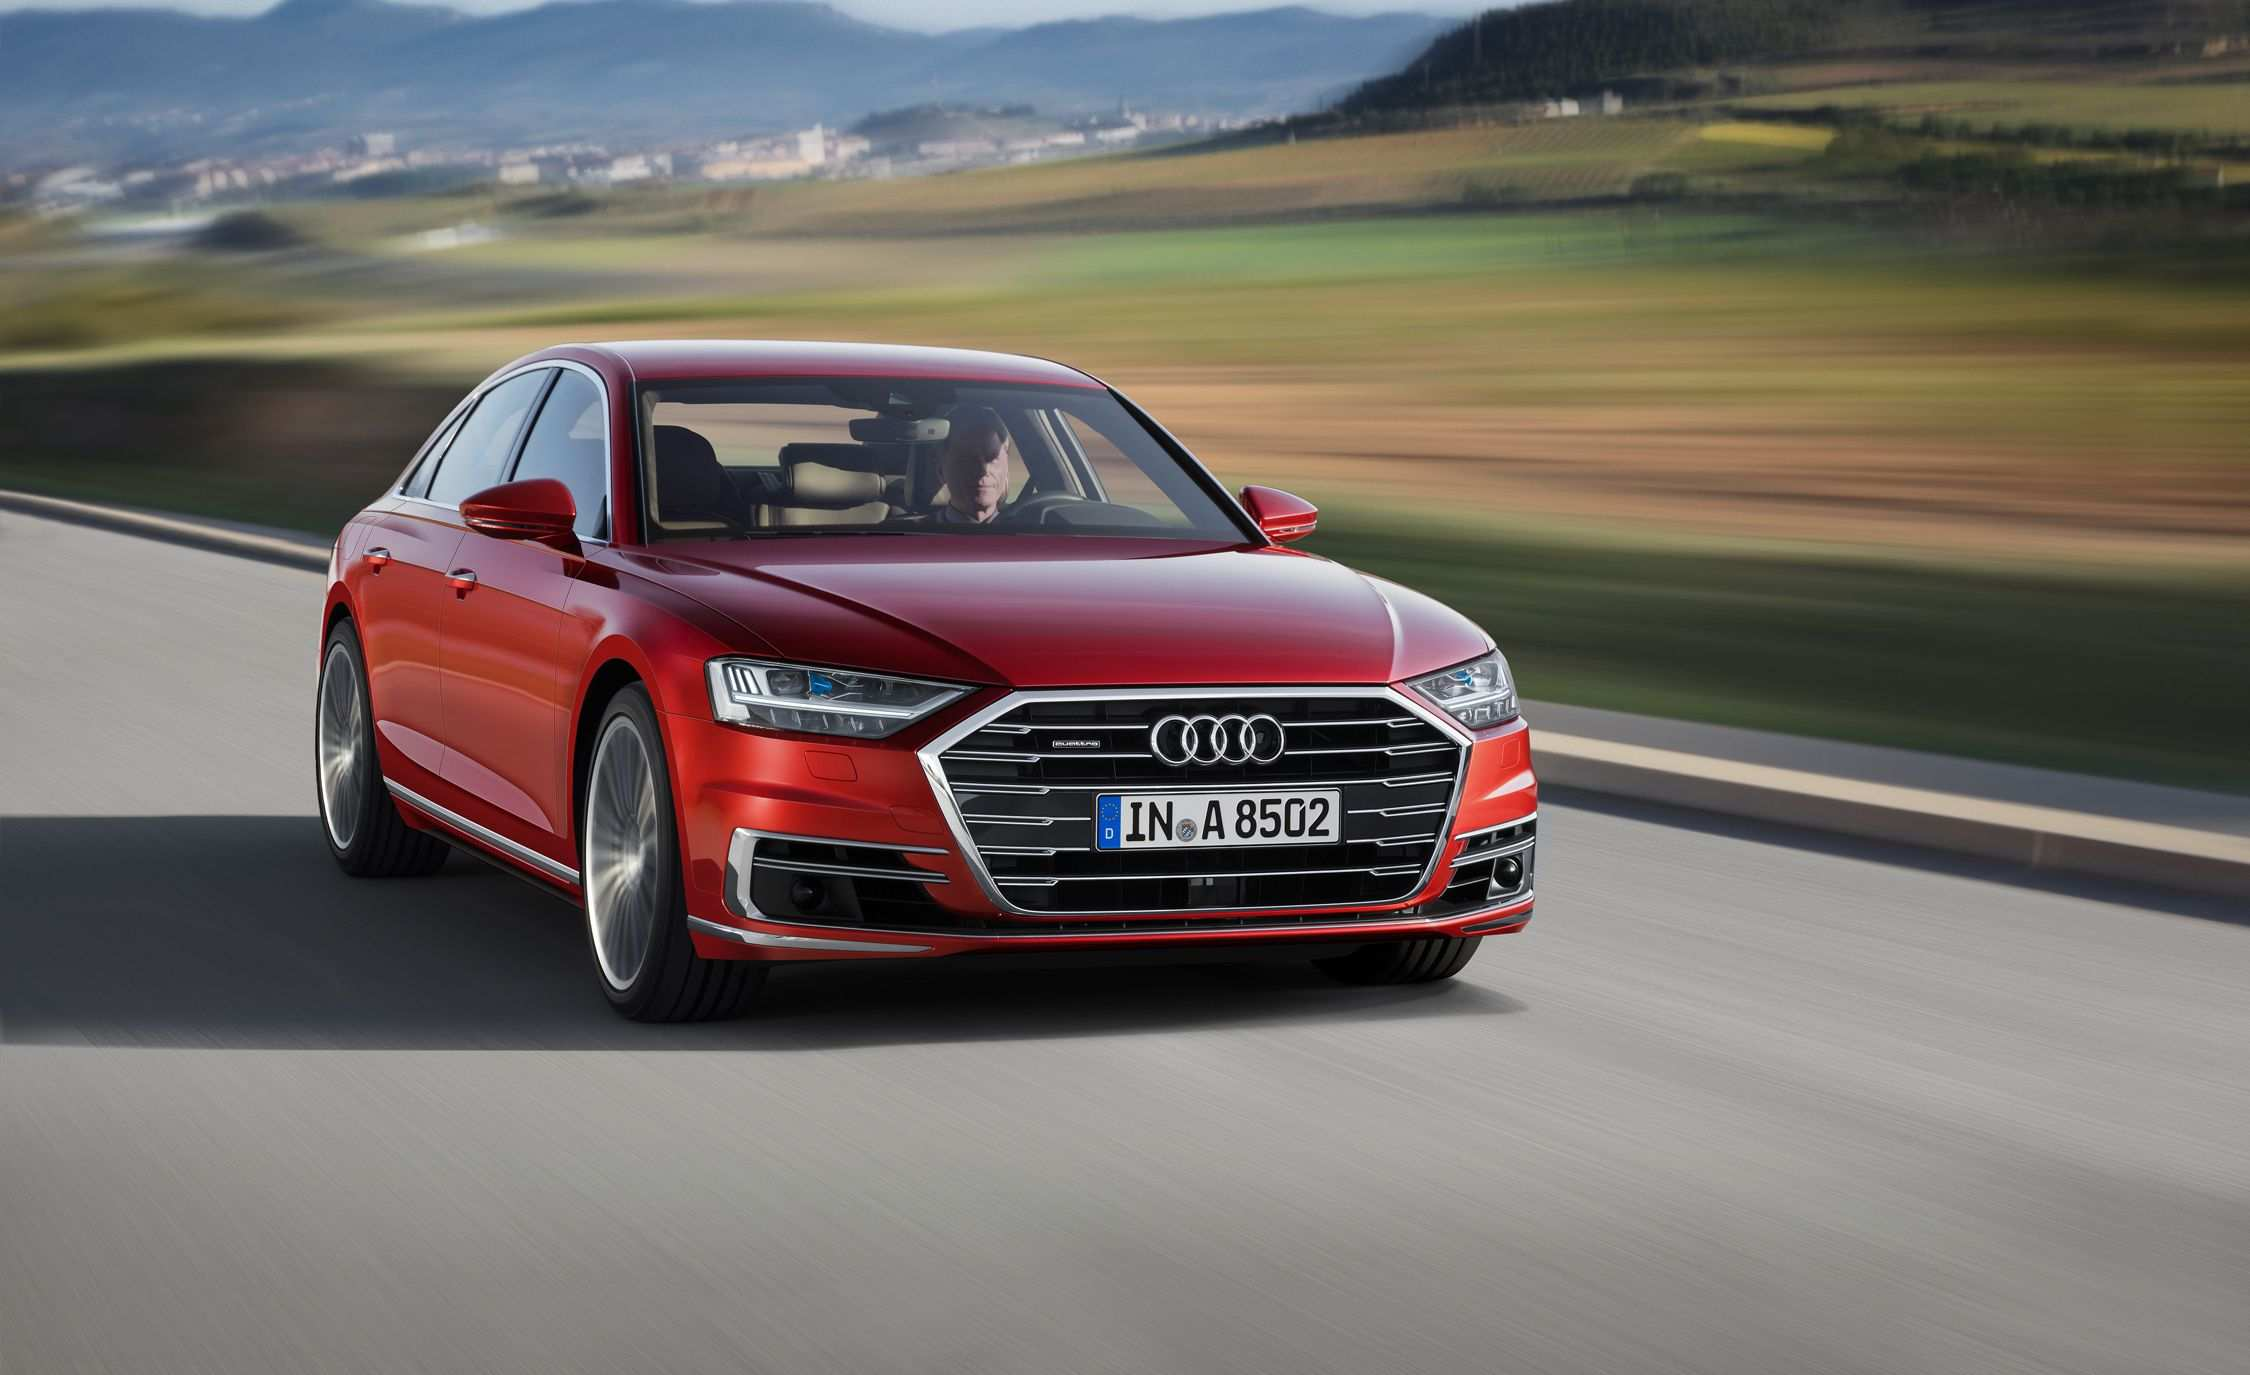 72 Best Review 2019 Audi S8 Images for 2019 Audi S8